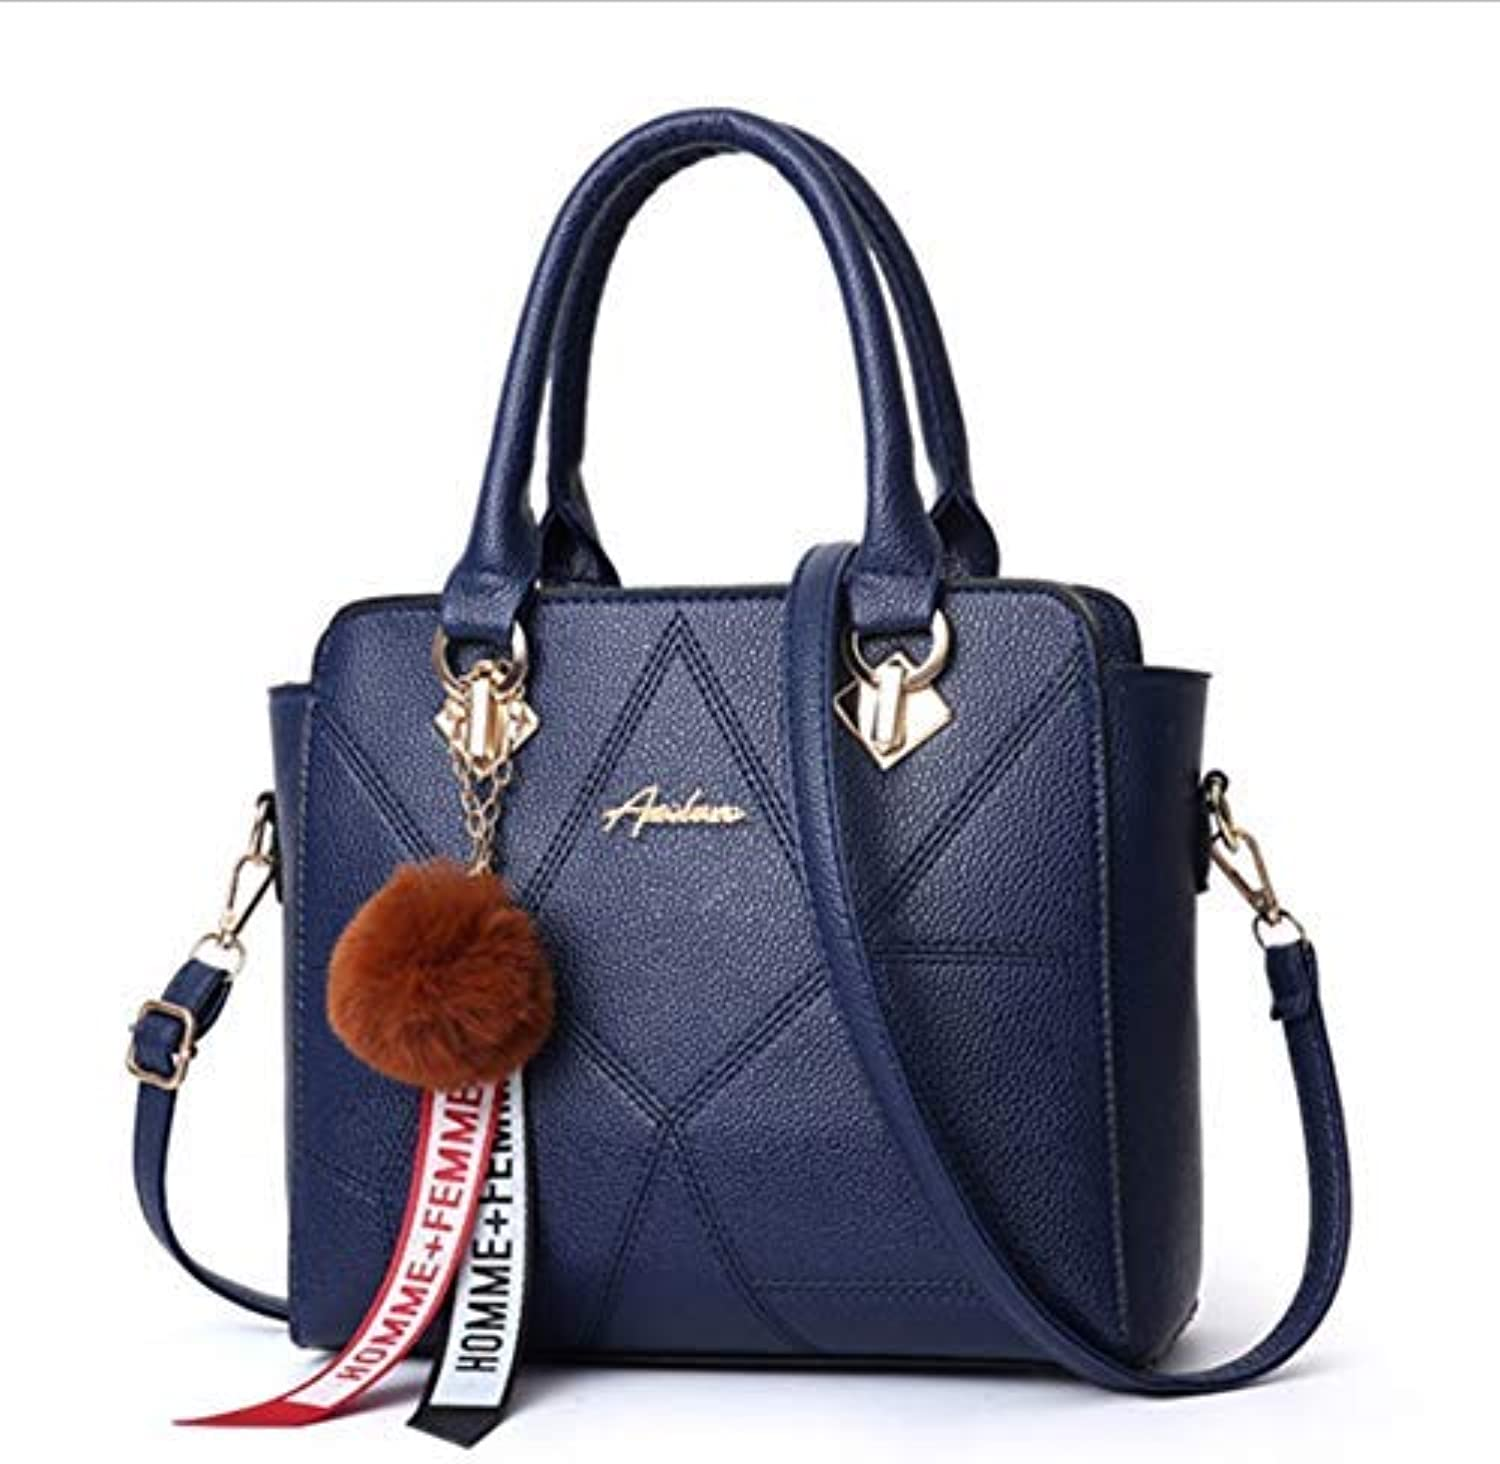 JQSM Solid color Crossbody Bags for Women Fur Ball Hanging Shoulder Bags for Female Fashion Business Style Bag